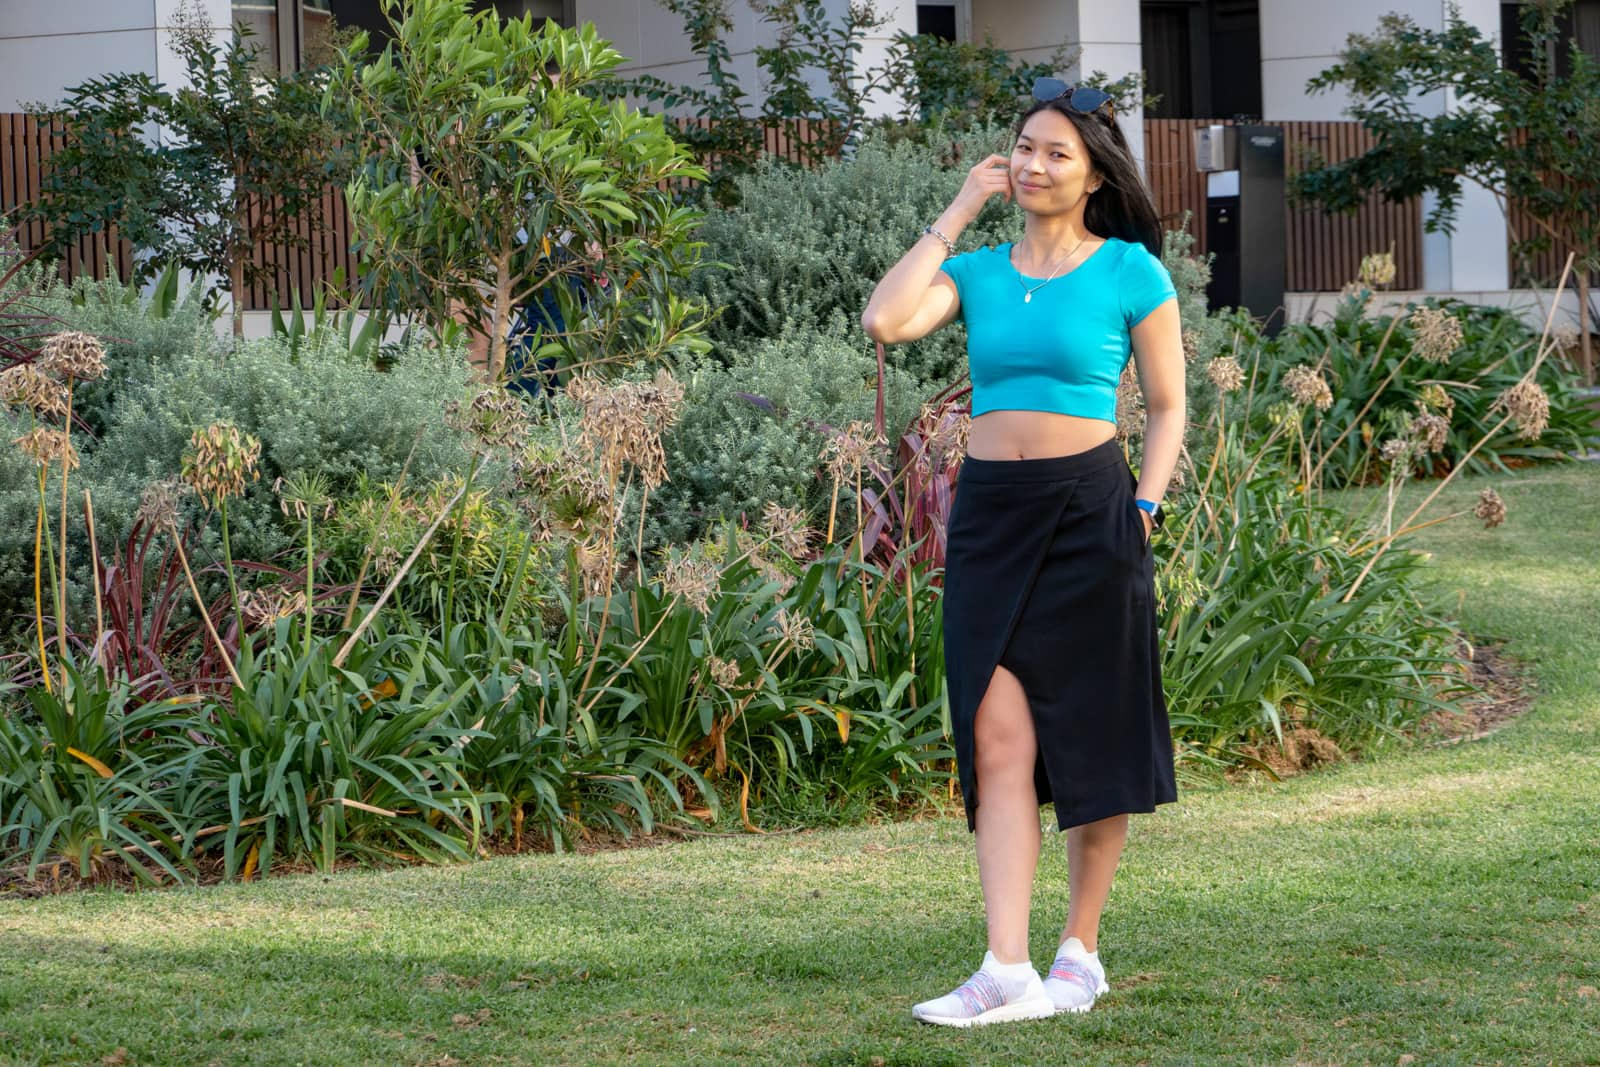 A woman with short dark hair, brushing some hair behind her ear. She is wearing a turquoise top and a long black skirt with white running shoes. She's standing in a garden